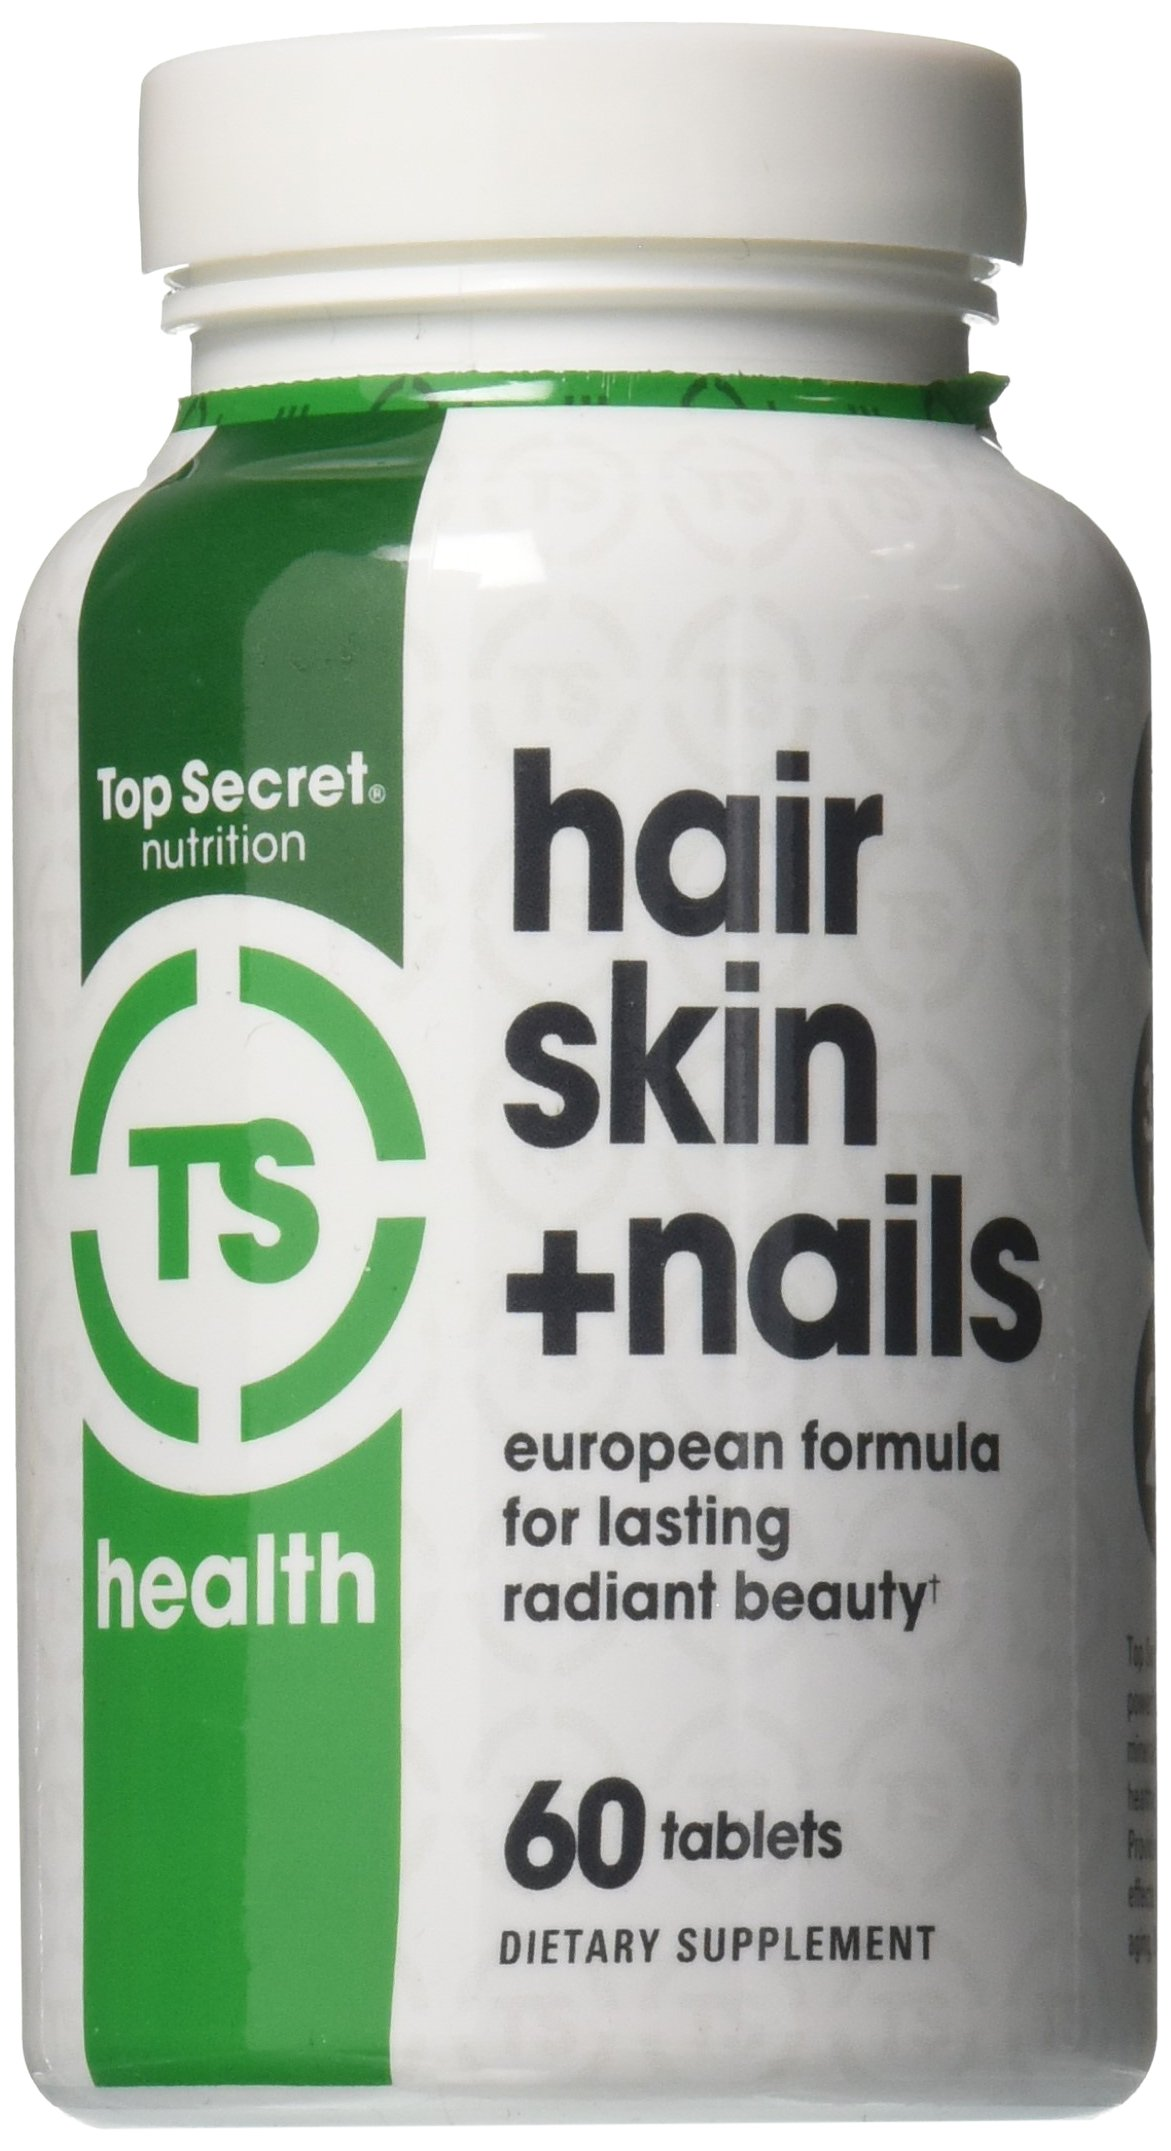 Top Secret Nutrition Hair Skin & Nails European Formula of 29 Anti-aging Vitamins and Minerals and Phytonutrients with Collagen, Biotin and Hesperidin, 2-month supply (60 tabs)